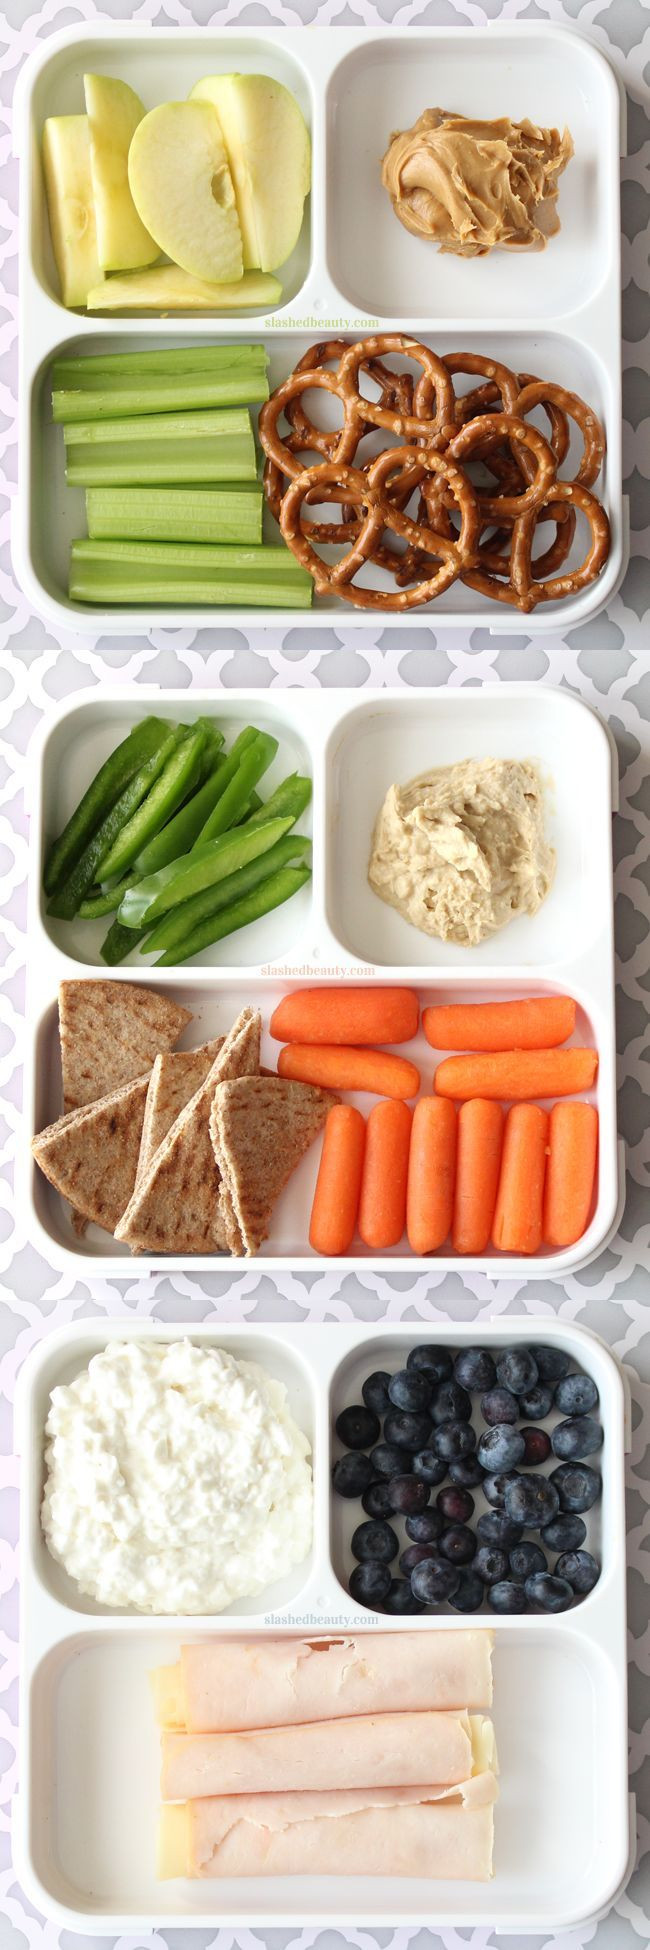 Ideas For Healthy Snacks  549 best images about Healthy Snacks For Kids on Pinterest